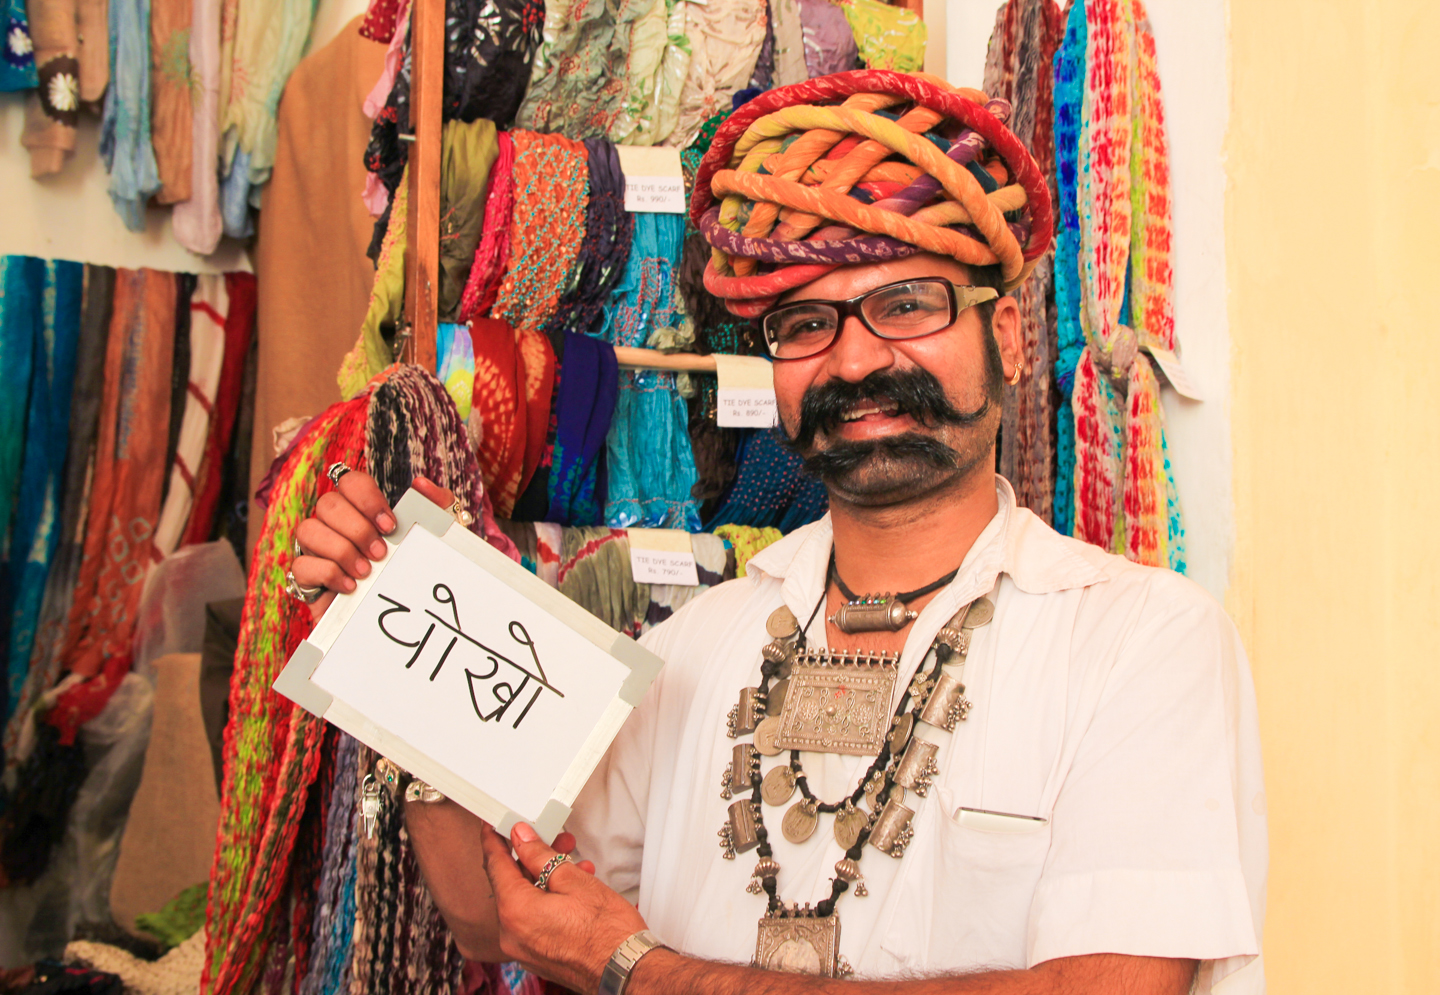 Ishwar Devani has been selling handmade scarves in Jodhpur's Mehrangarh Fort for 14 years. He learned the business from his father. 'Every day I play with colors. Look at my hands. You can see from my hands that this is my family business.'